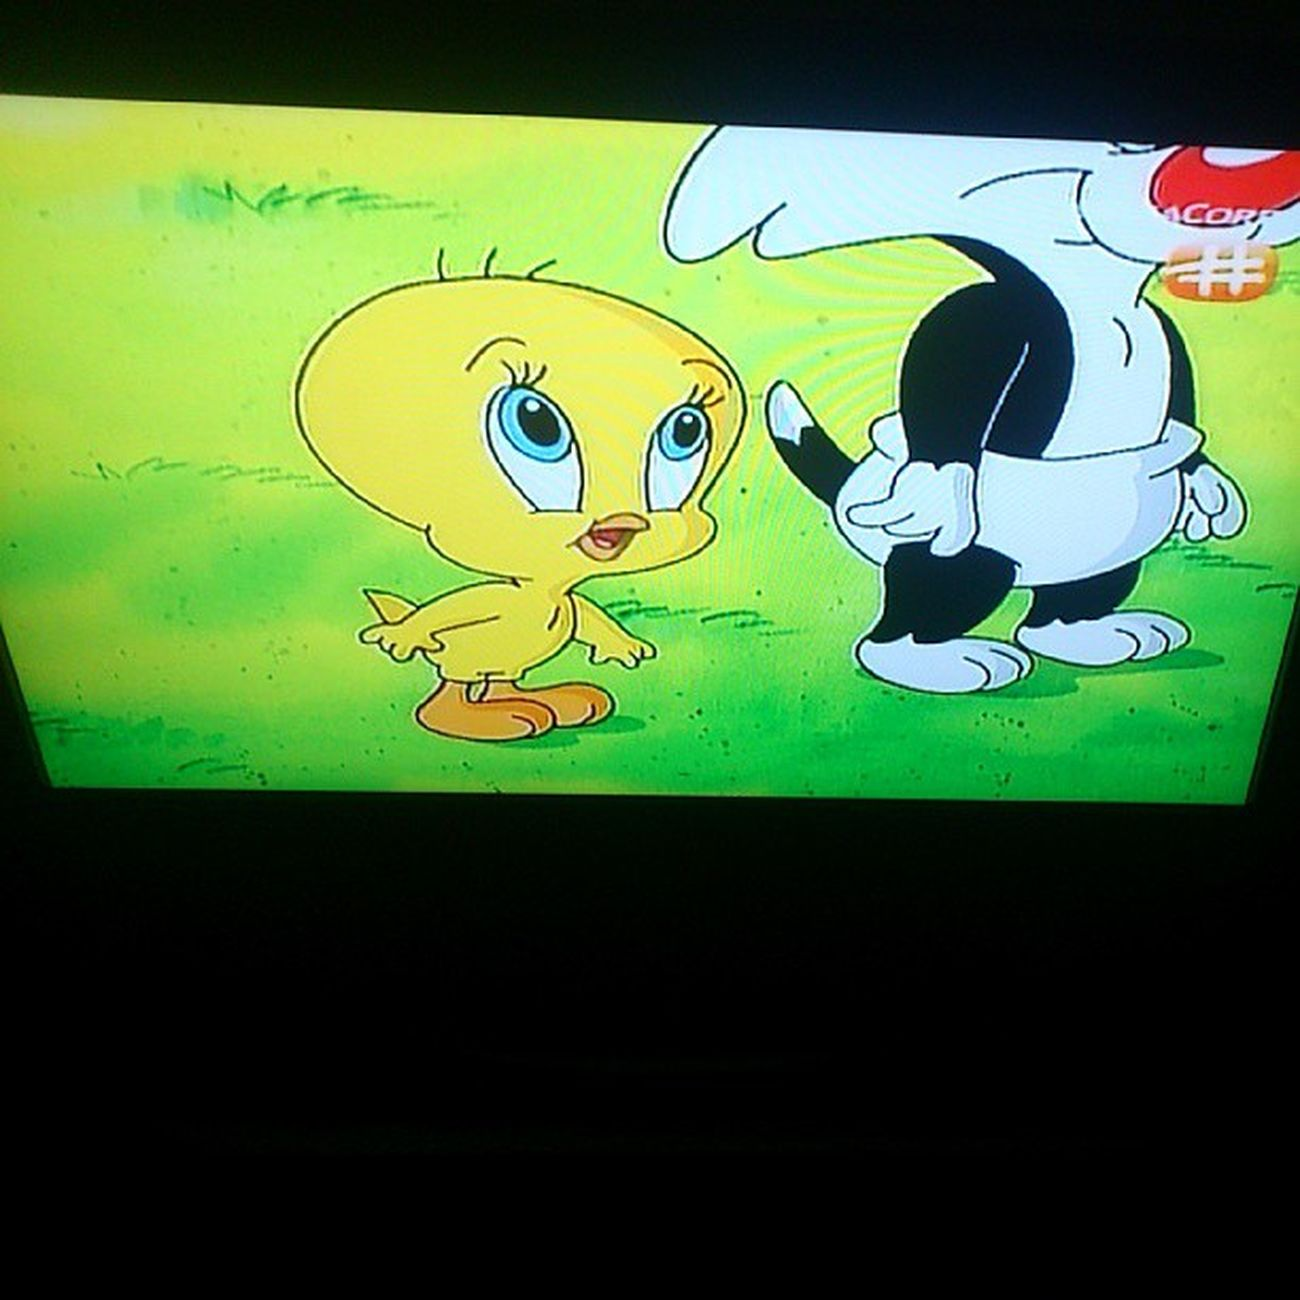 Ol' time fav. BabyLooneyTunes well,in my opinion,cartoon doesn't matter if you're old or young :)